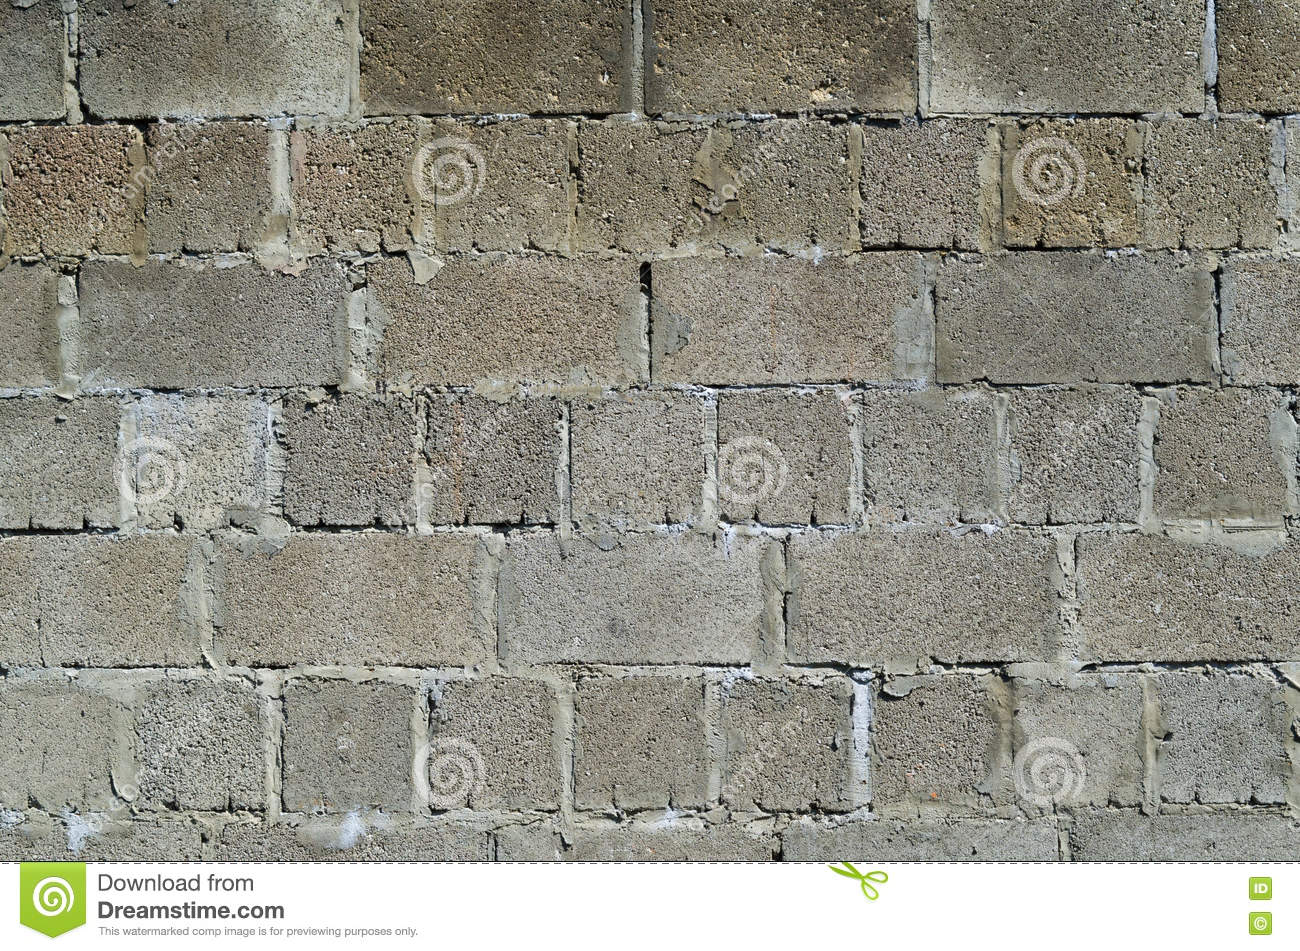 The Wall Of Cinder Block Stock Photo Image 72339512